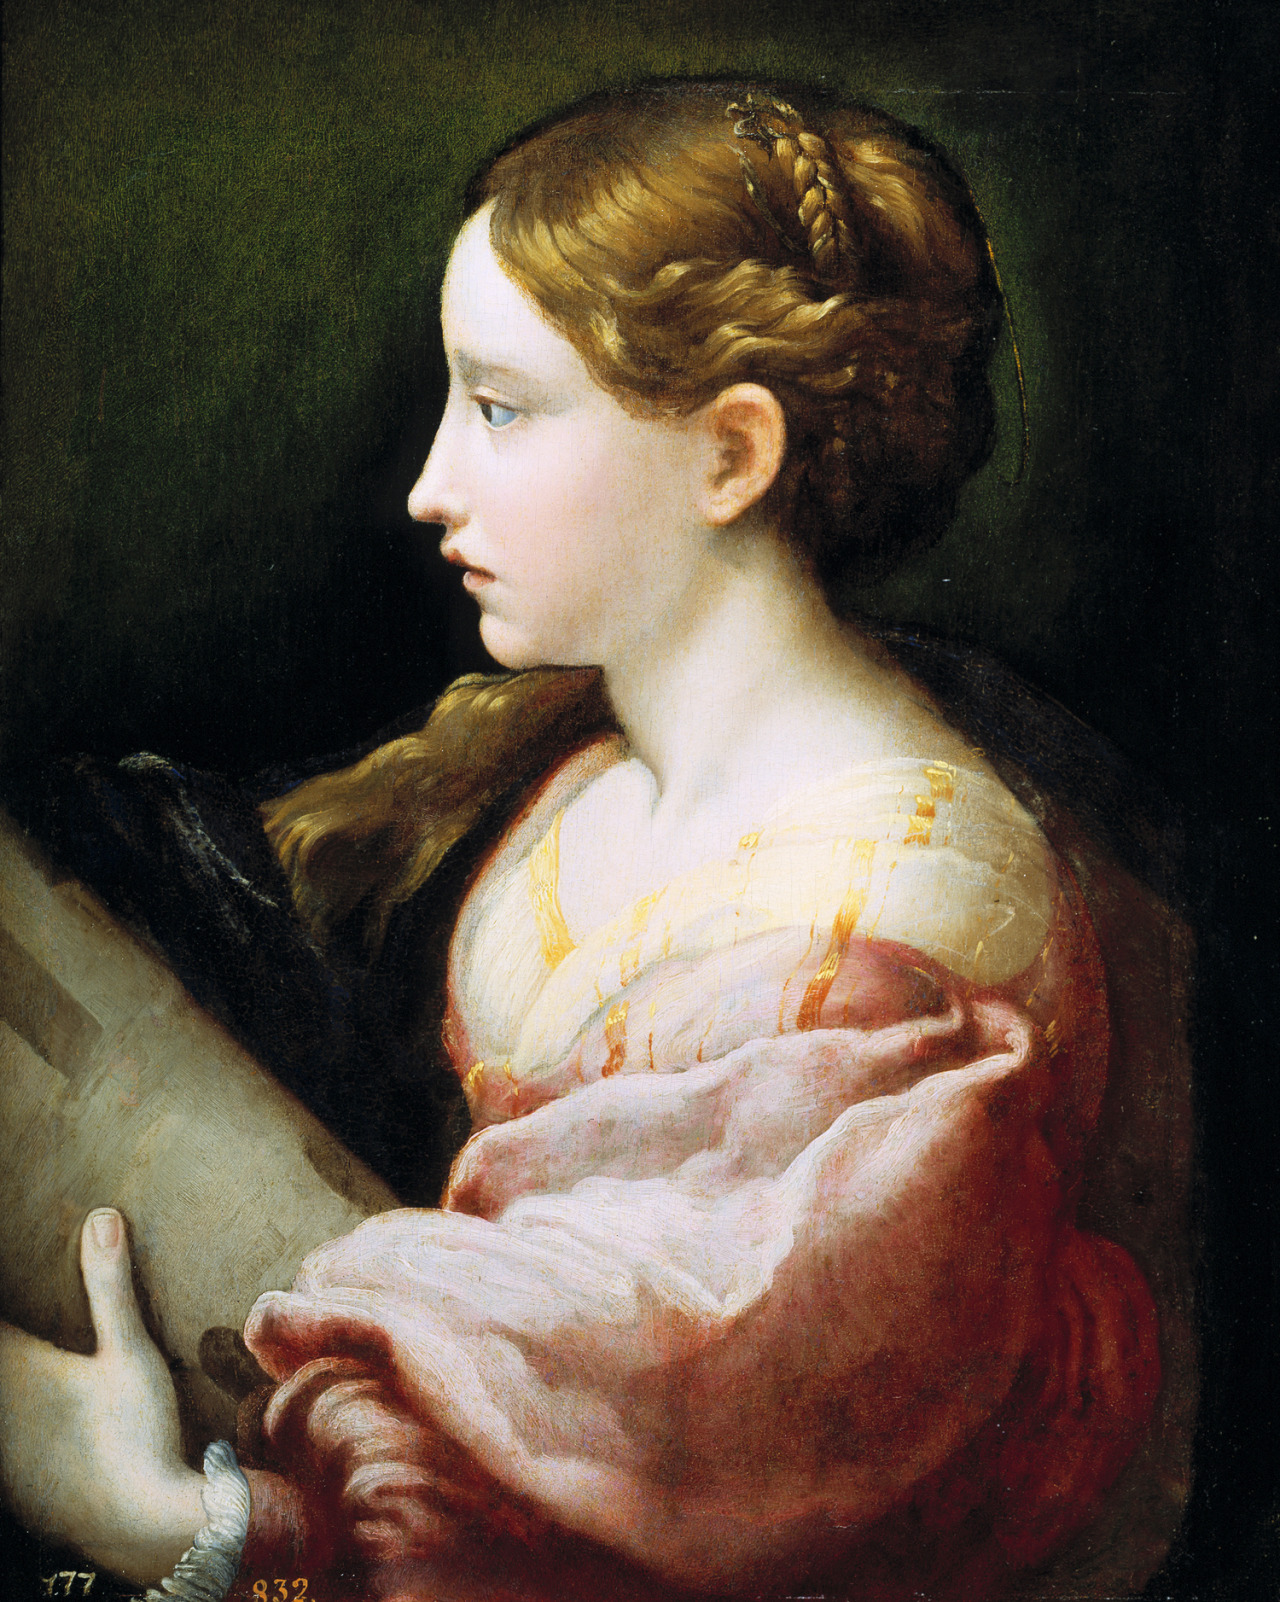 jaded-mandarin:  Parmigianino. Saint Barbara, 1522.